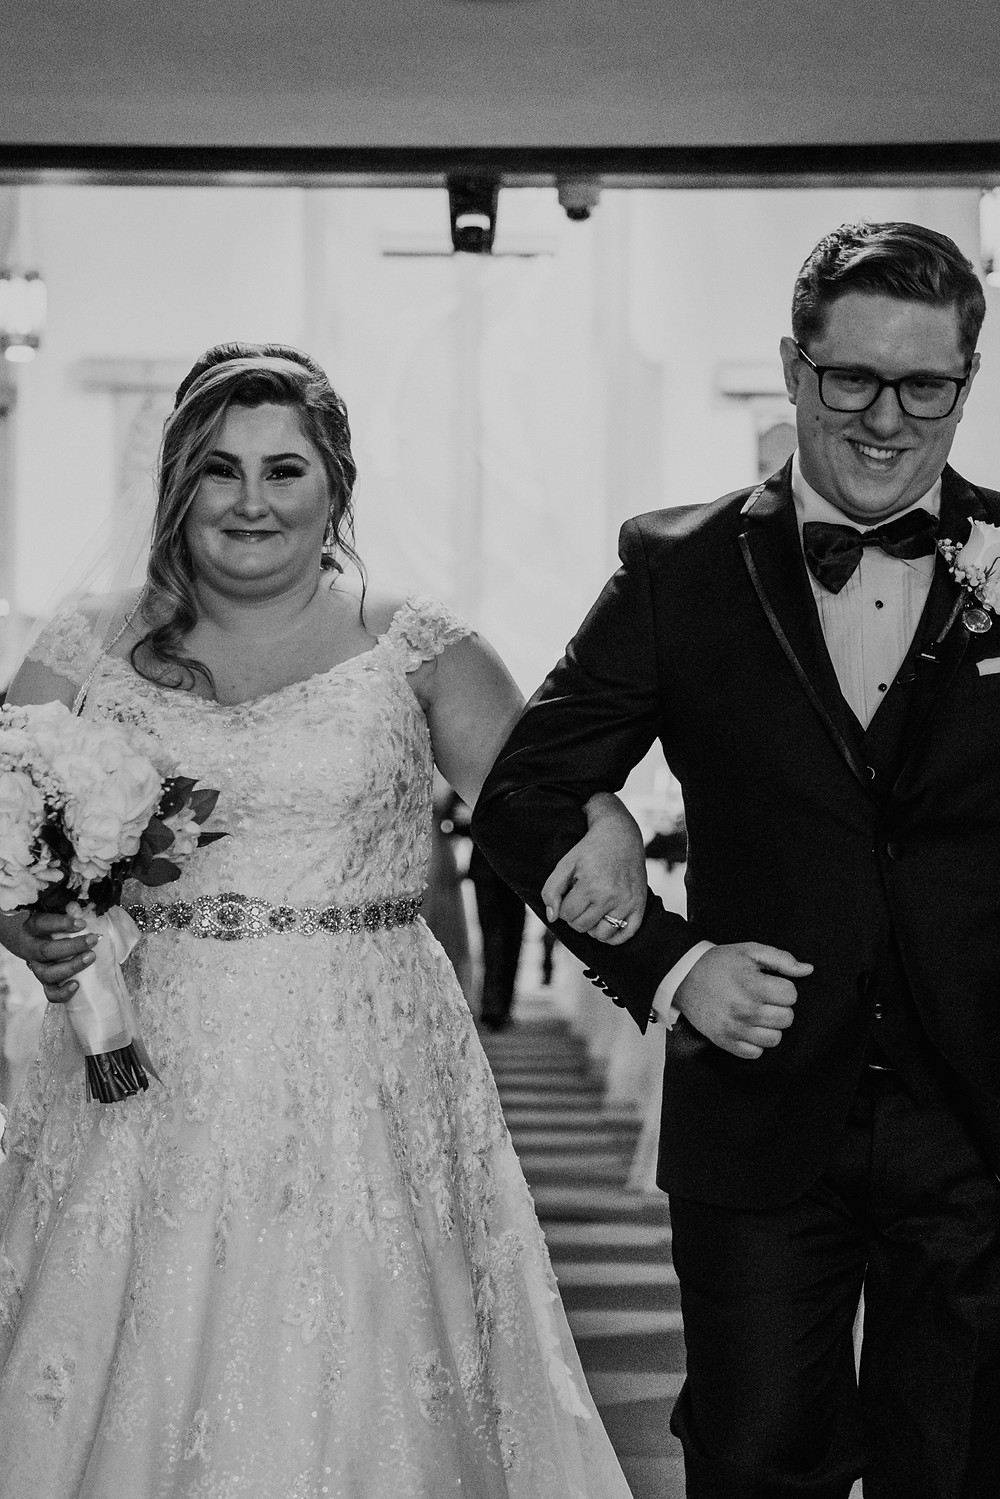 Metro Detroit church wedding. Photographed by Nicole Leanne Photography.